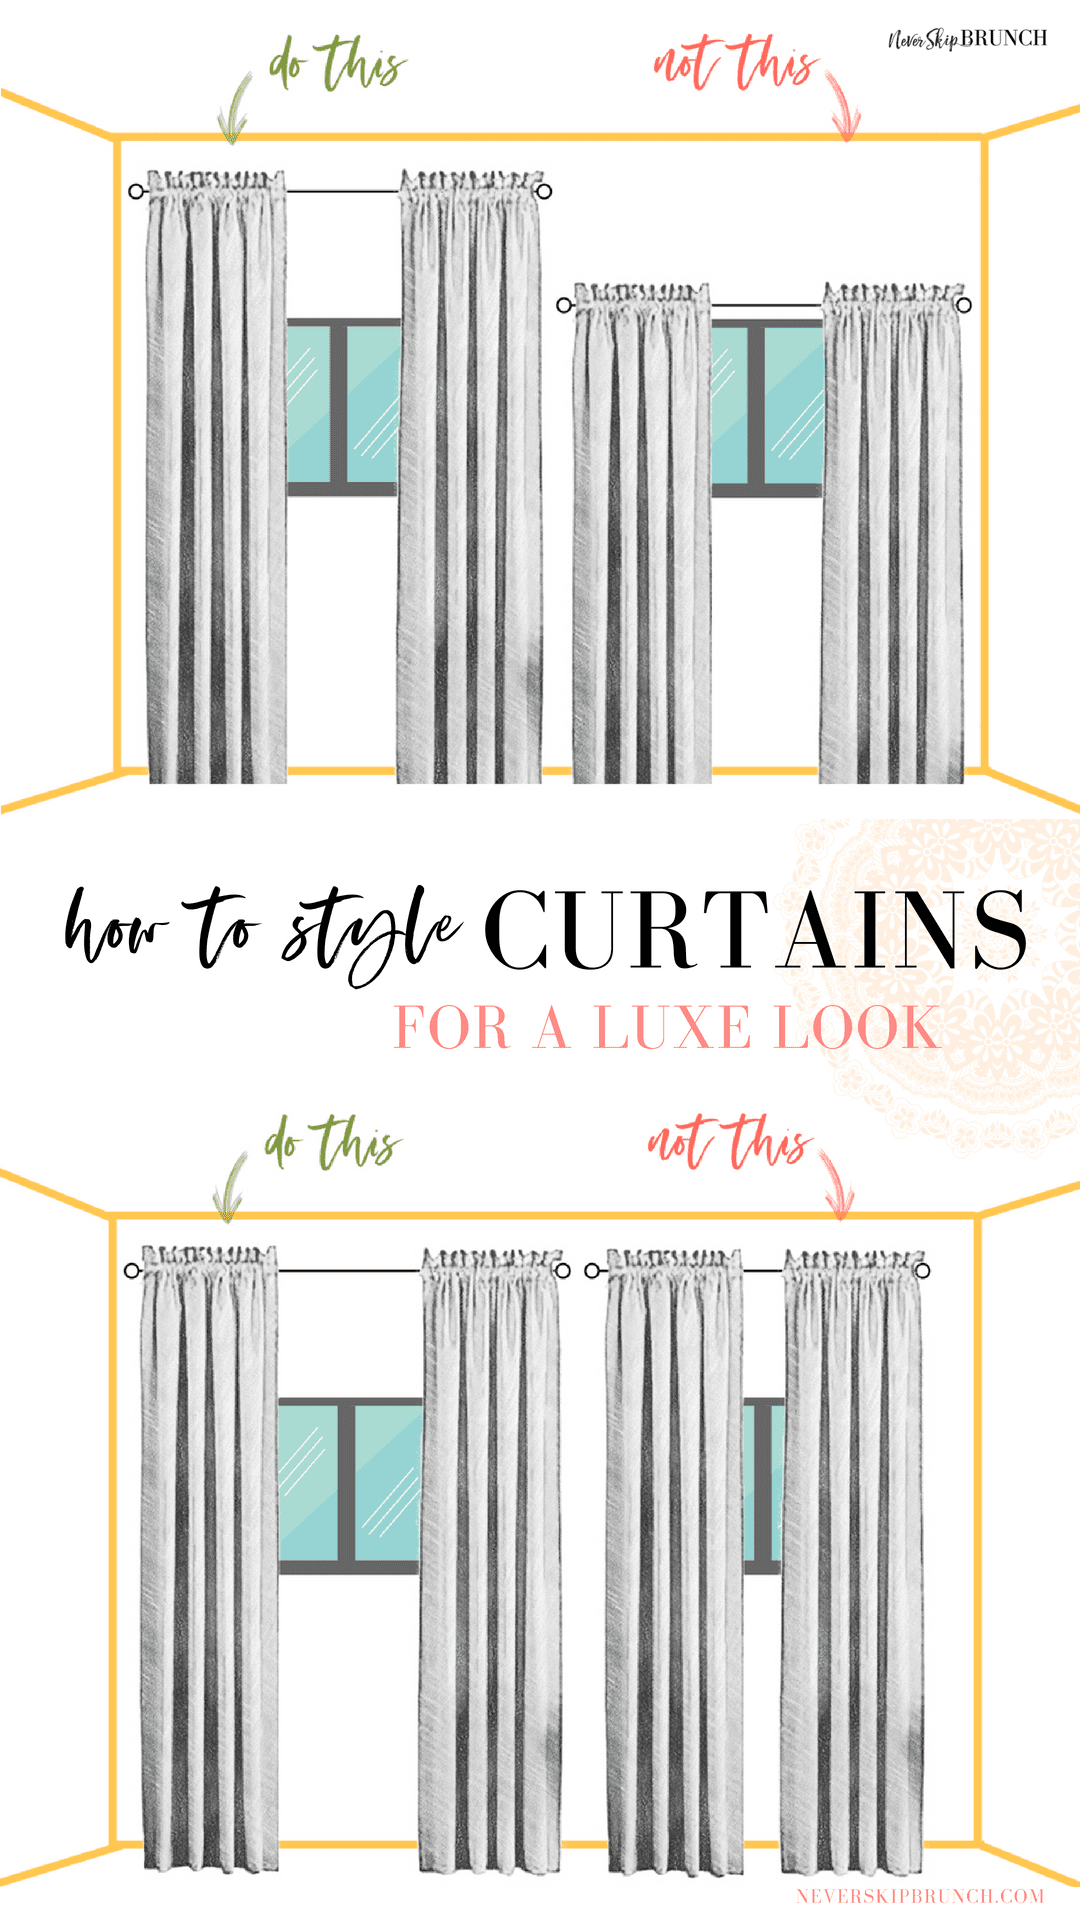 Here's how to style colored curtains. Some simple curtain tips and tricks for hanging curtains with sheers that are colored | never skip brunch by cara newhart #home #design #neverskipbrunch